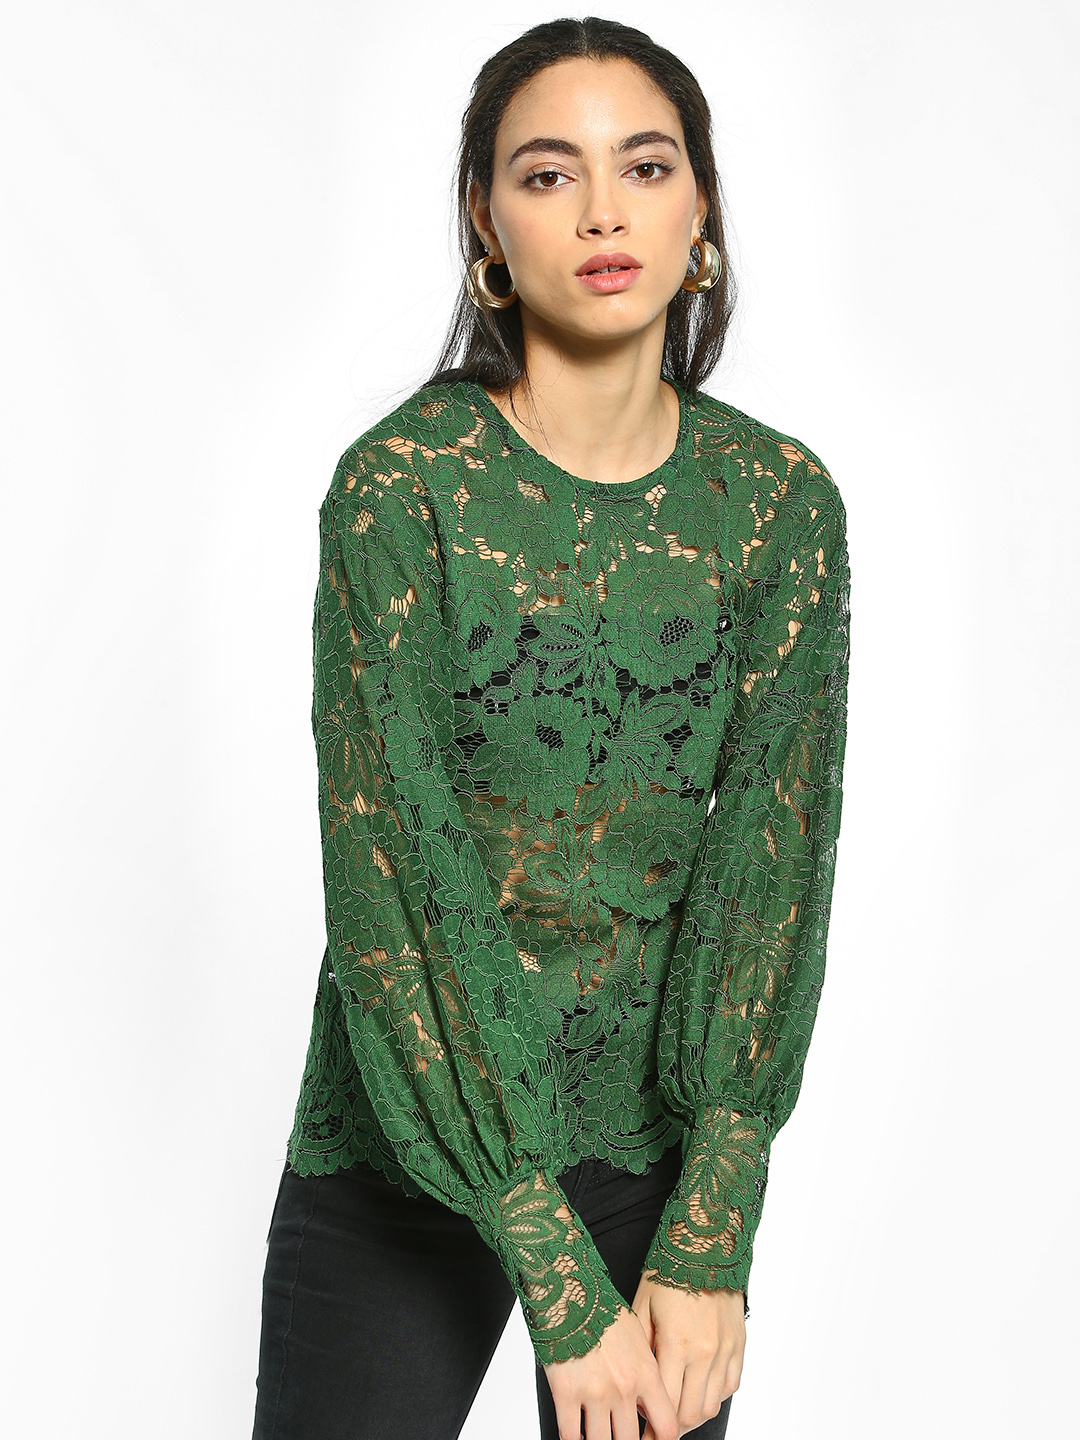 EmmaCloth Green Bishop Sleeve Floral Lace Blouse 1